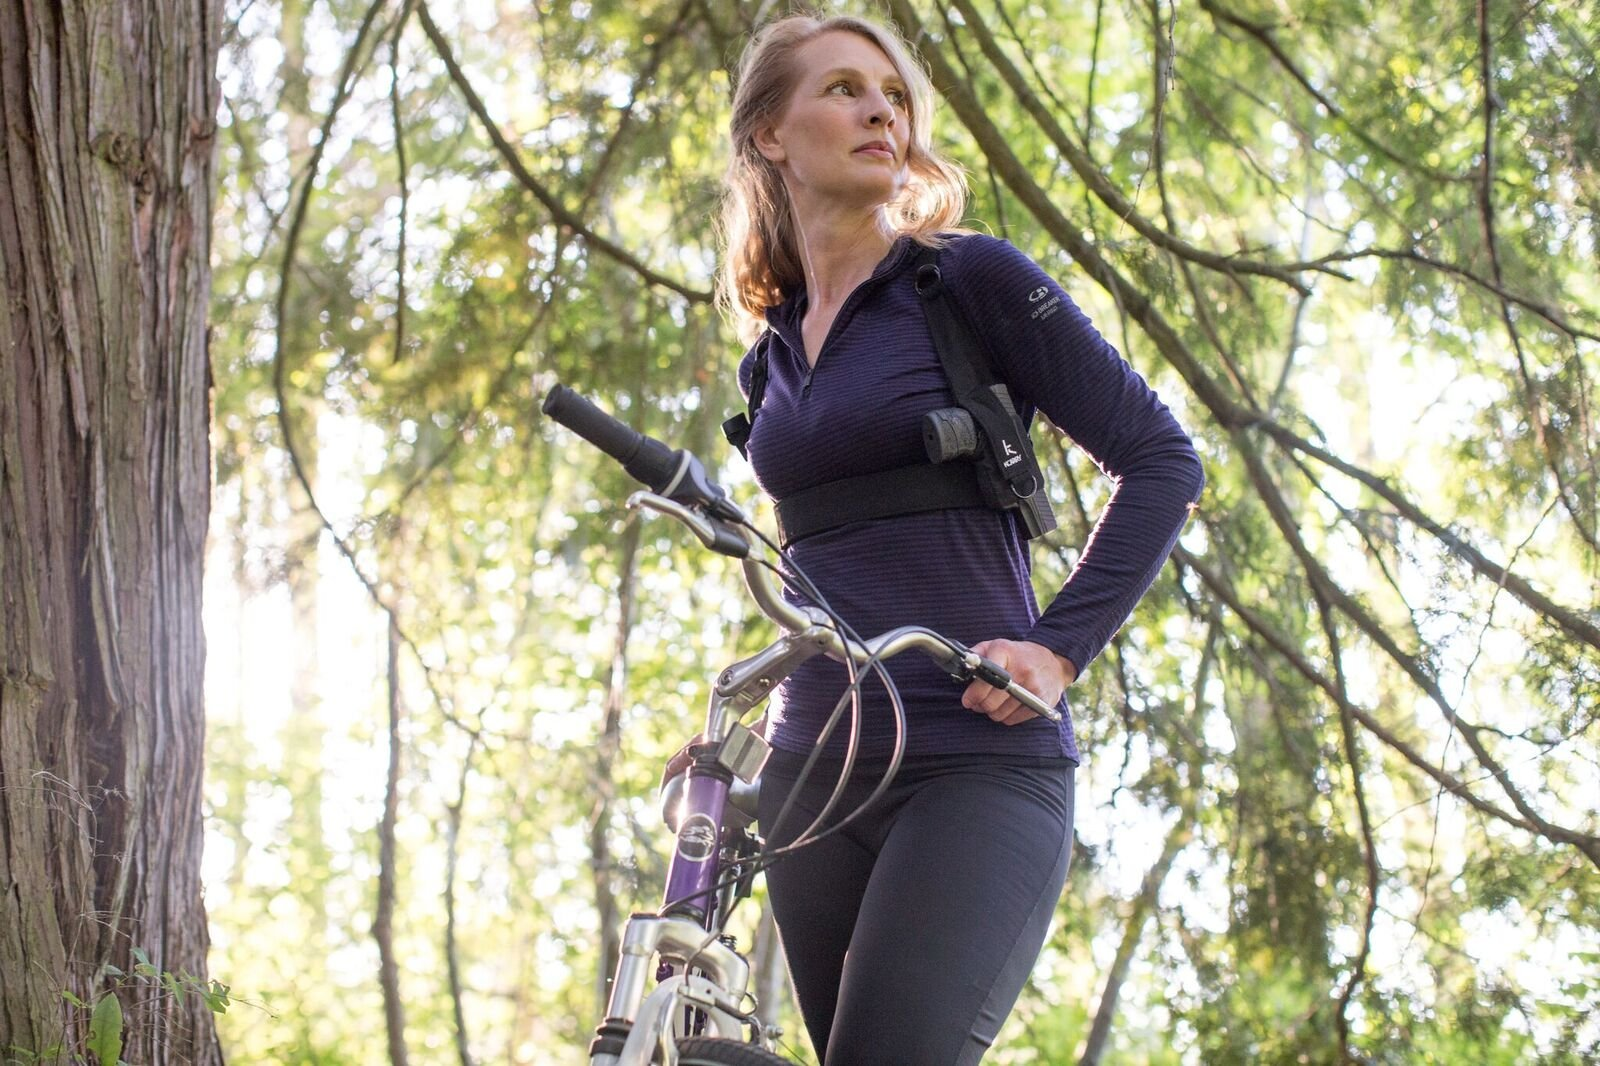 Safe Concealed Carry Hiking Biking